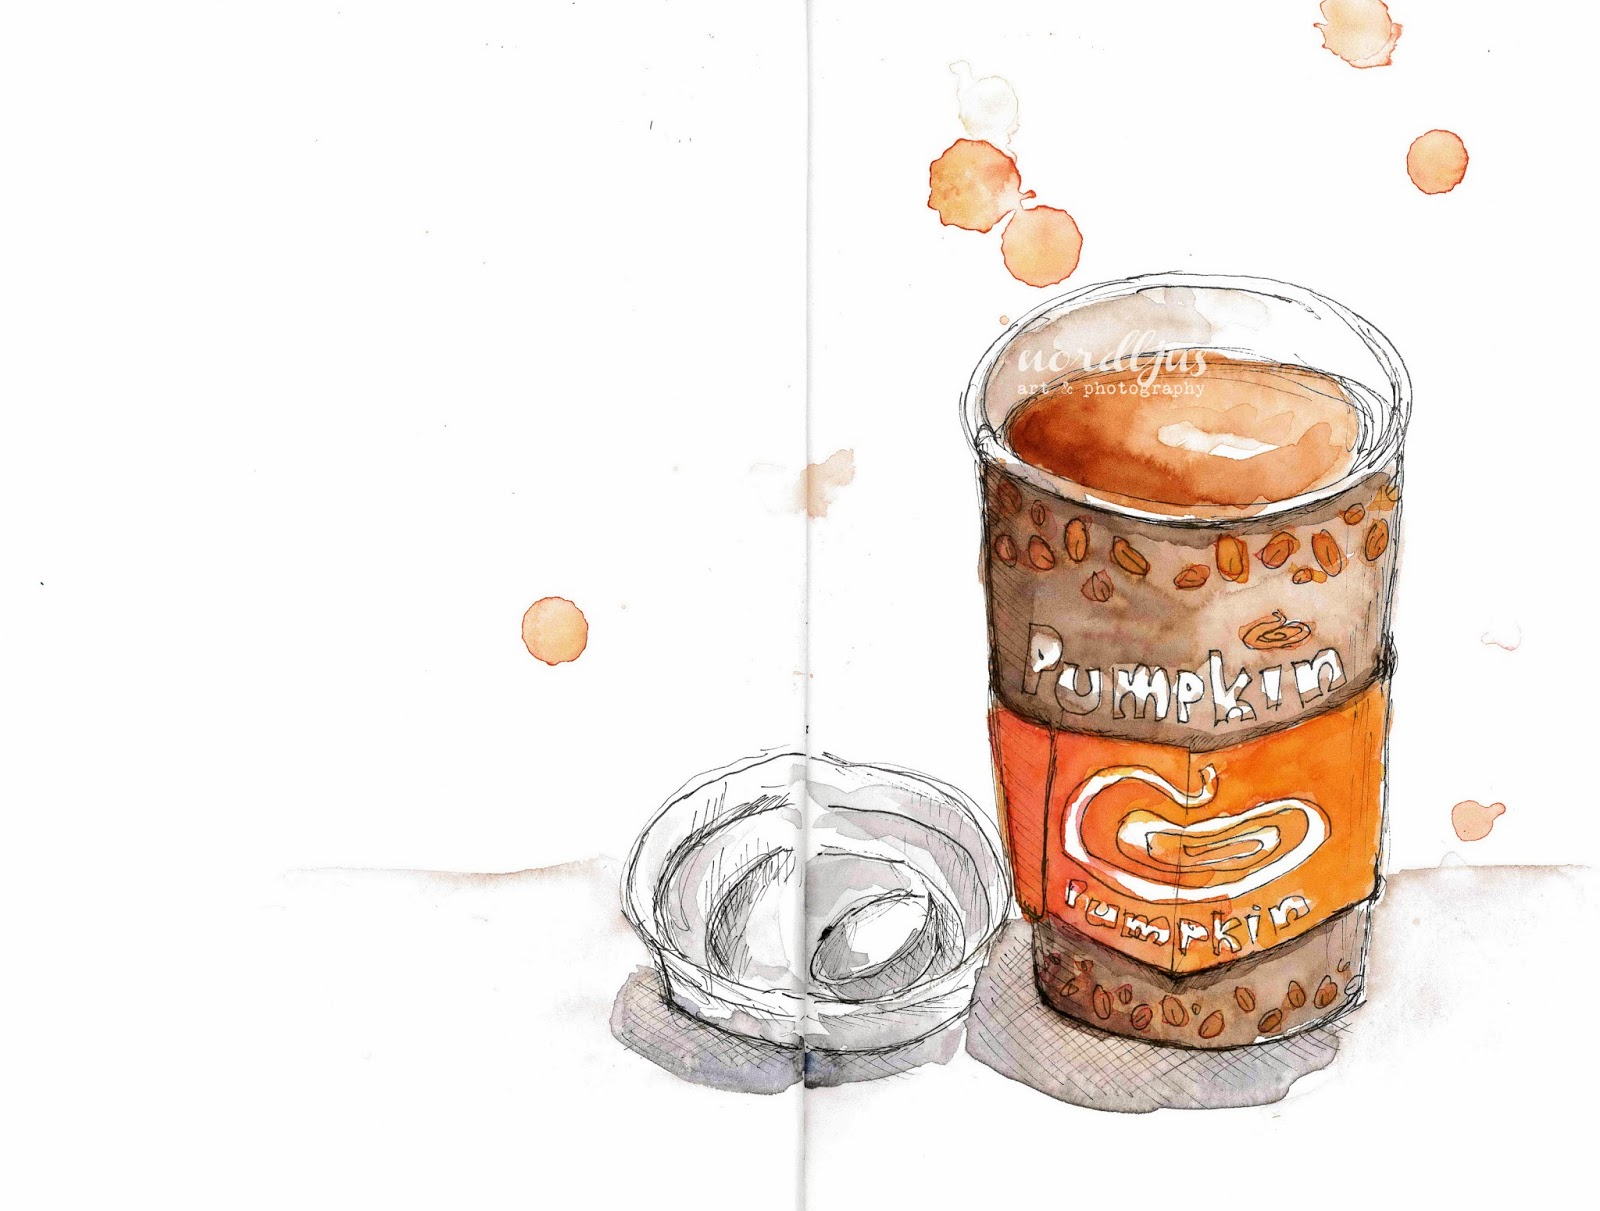 Nordljus pumpkin tea sketch